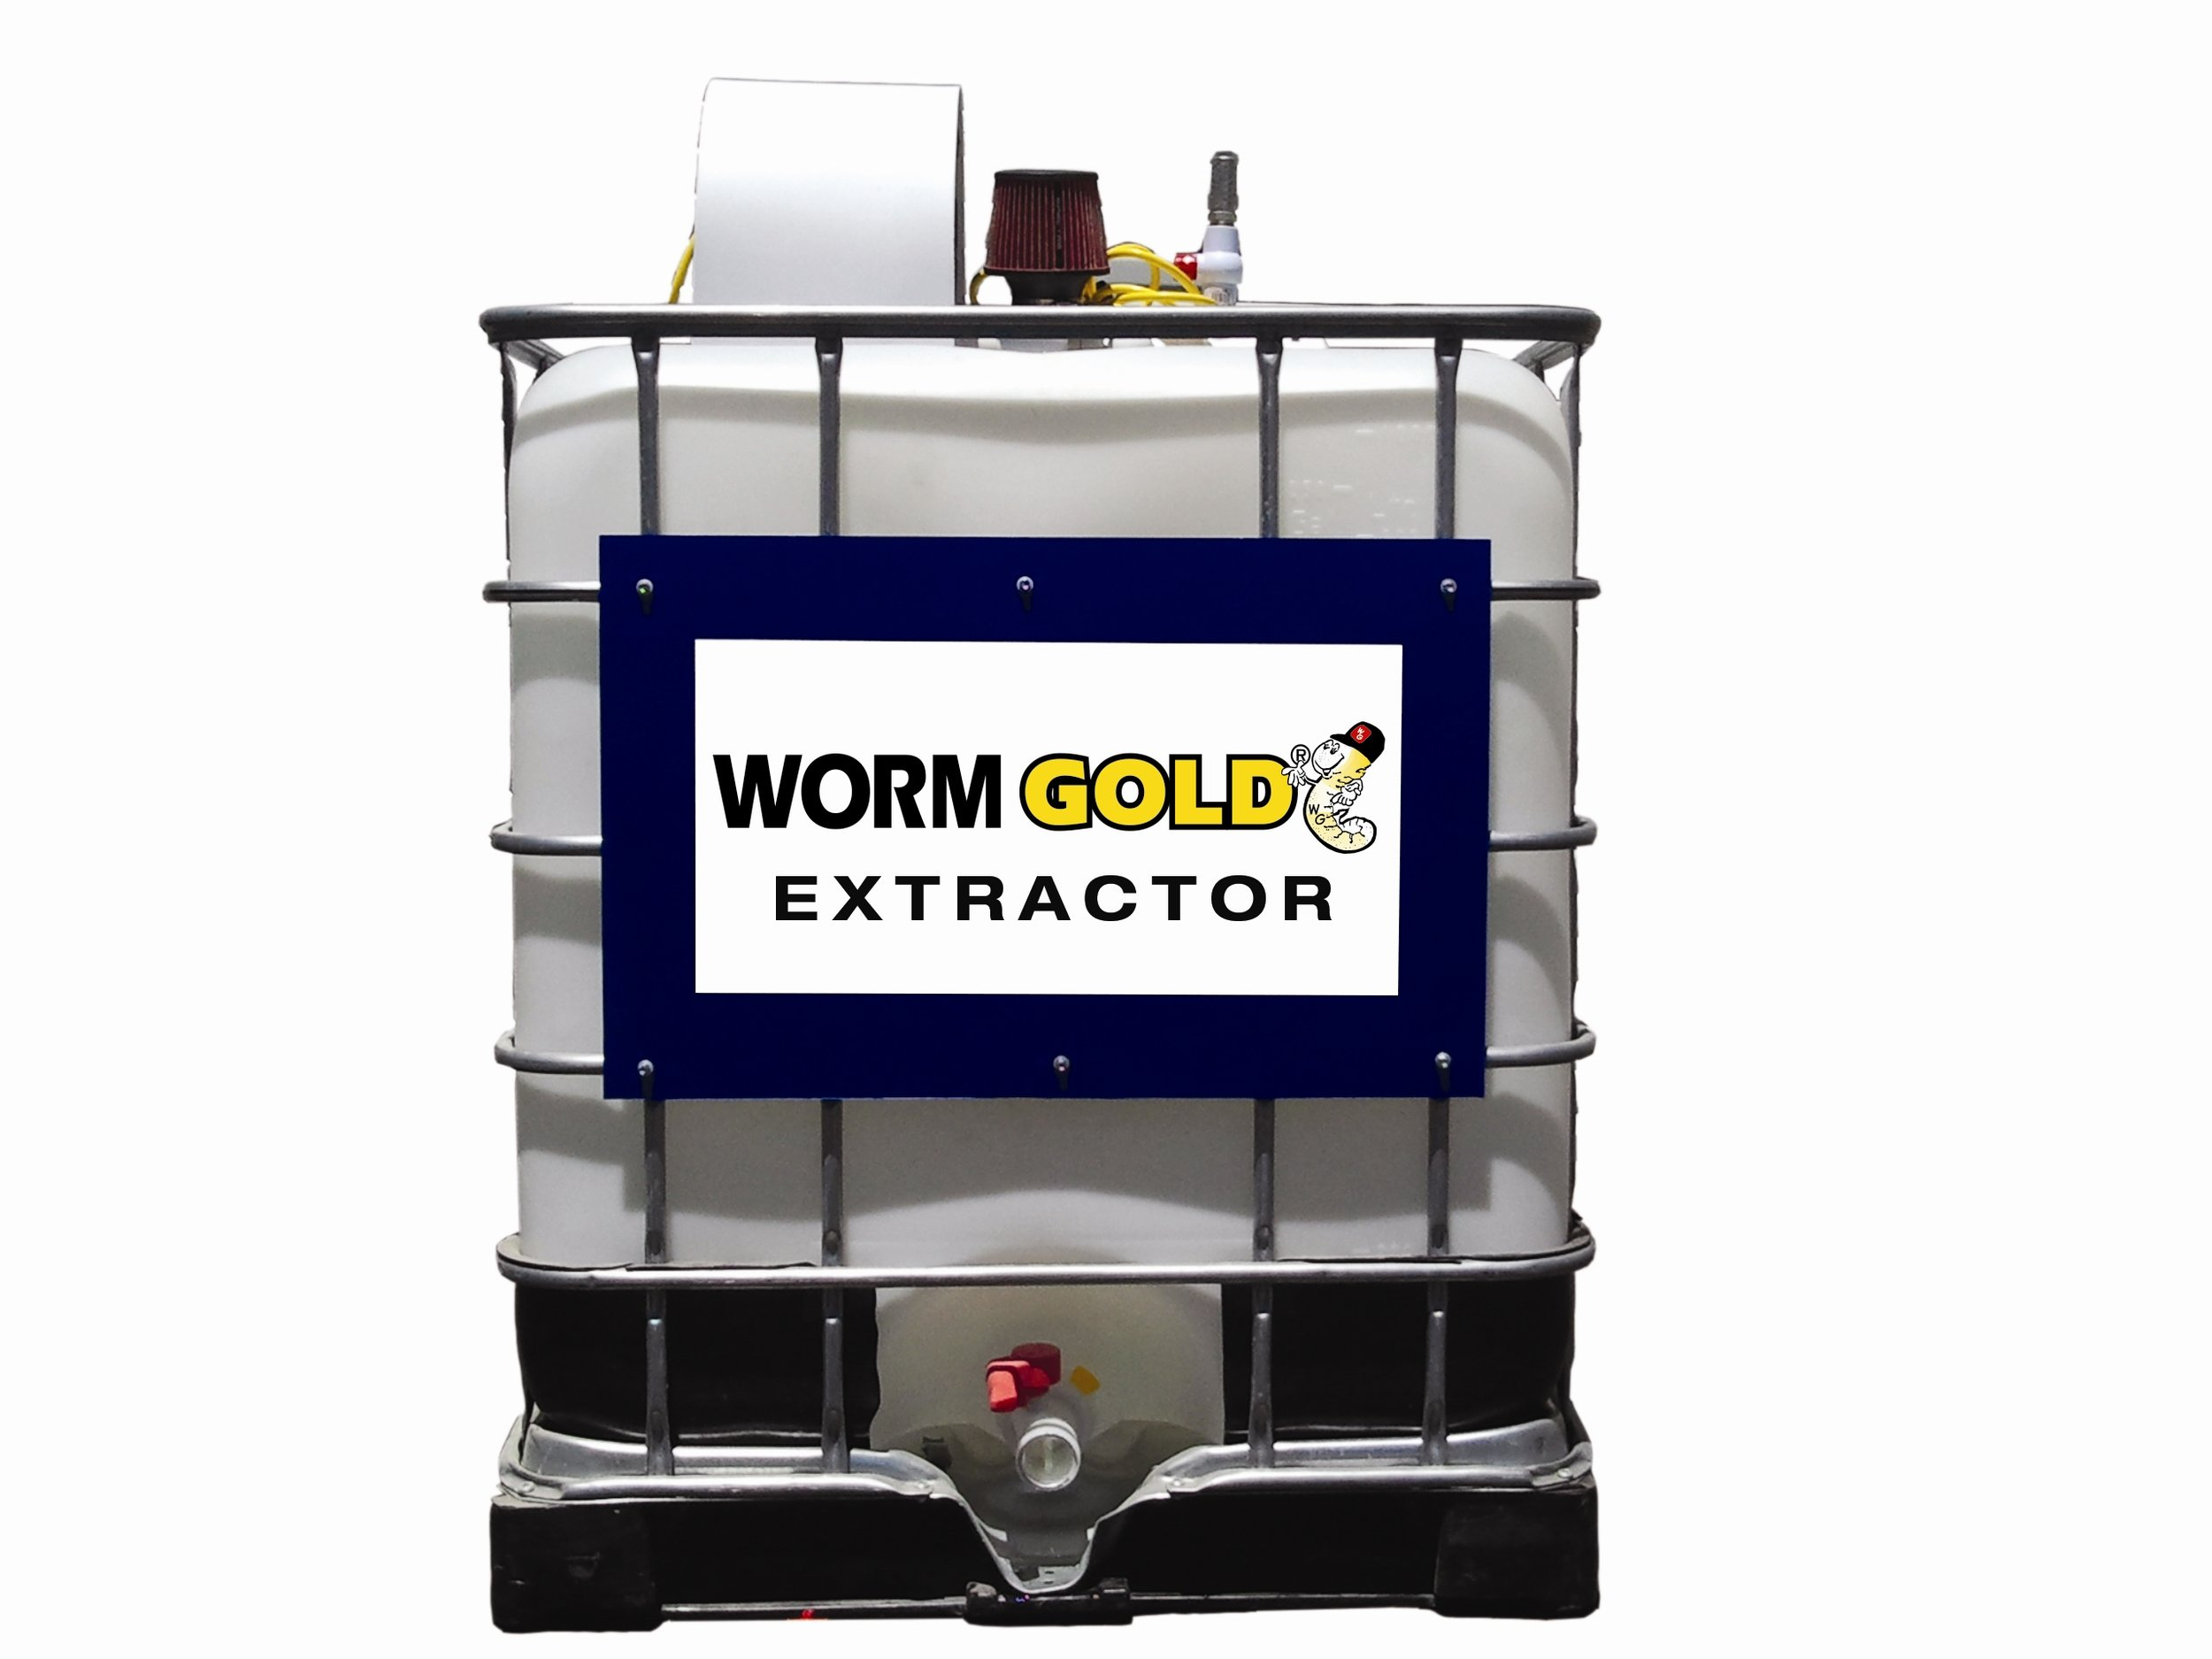 Wormgold Extractor.jpg